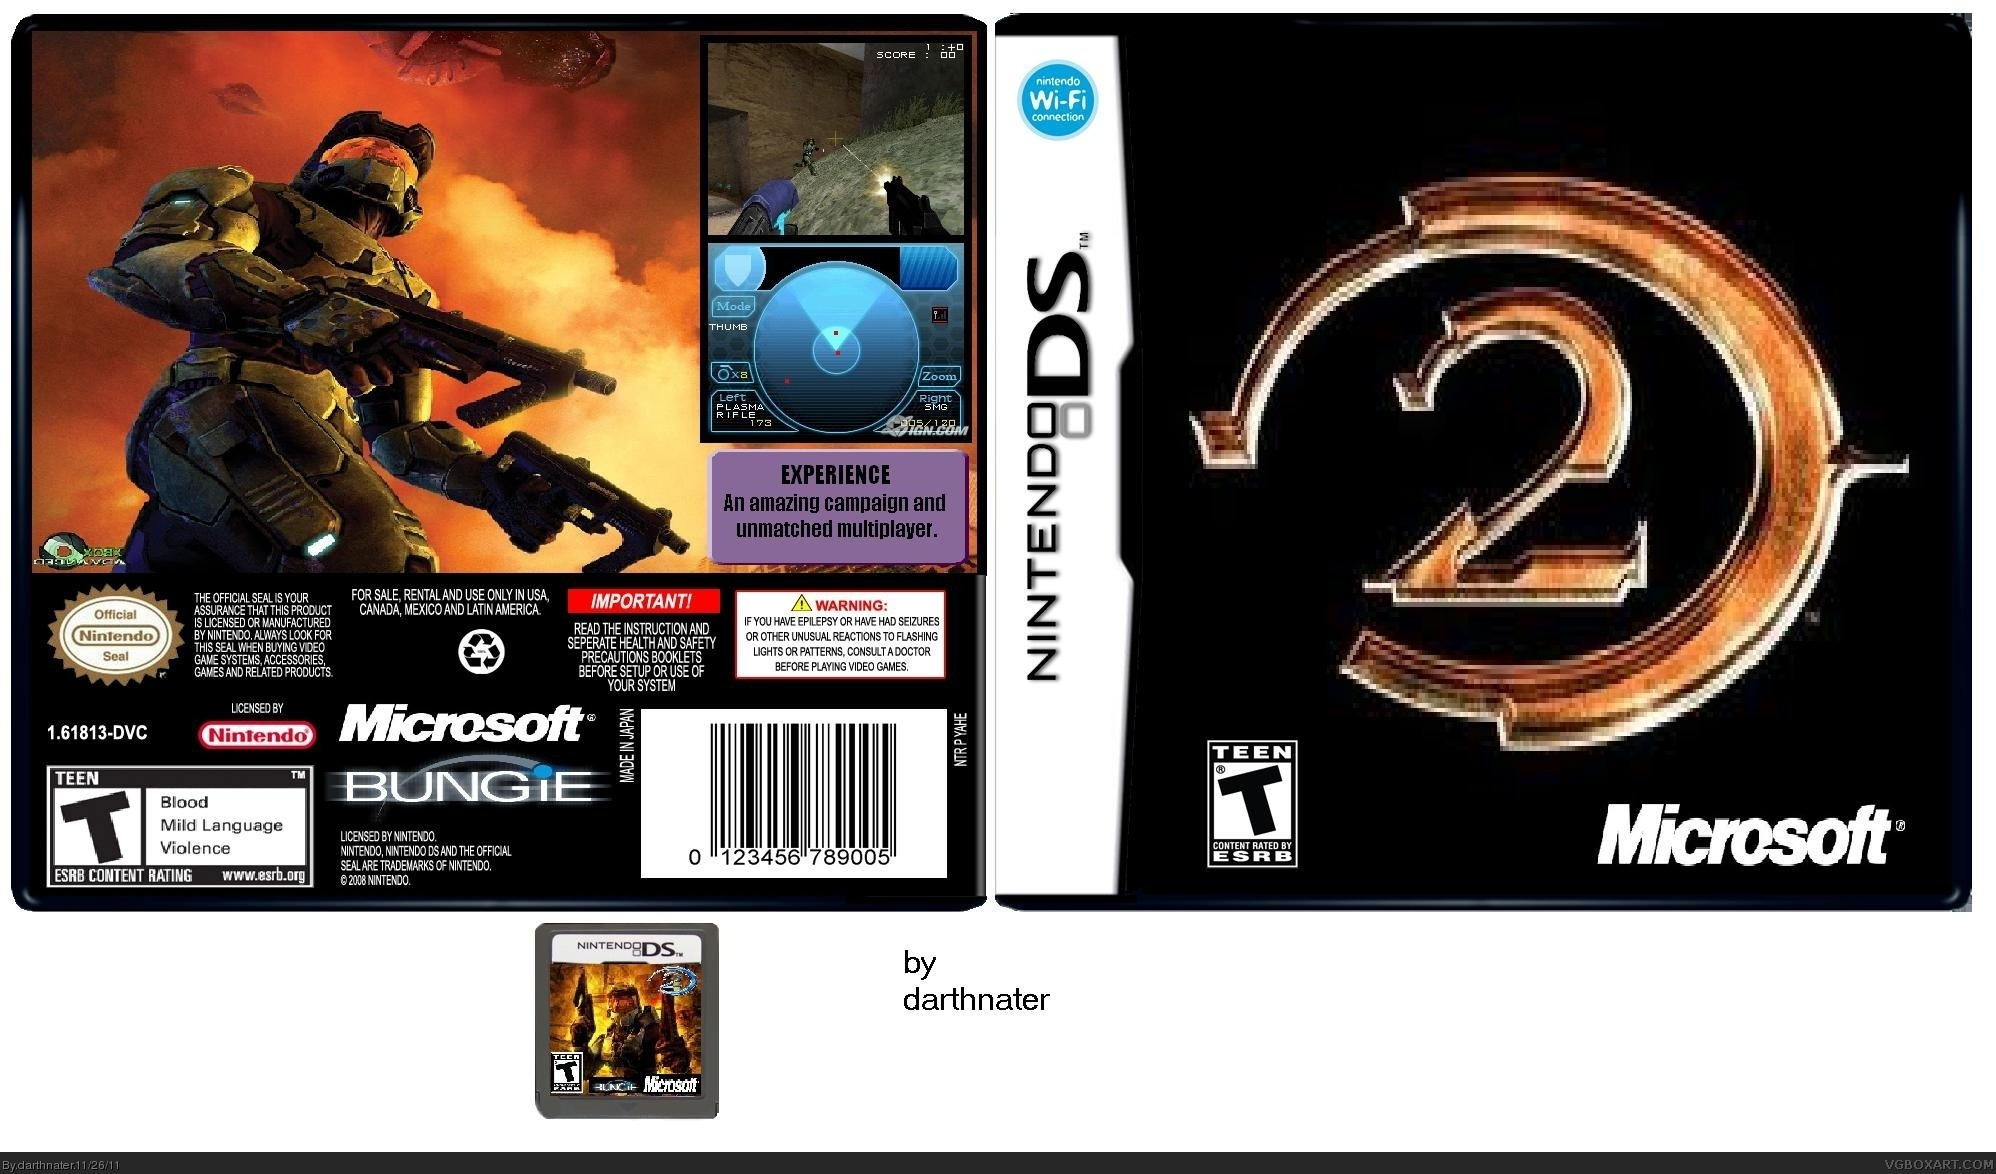 Halo 2 Nintendo Ds Box Art Cover By Darthnater